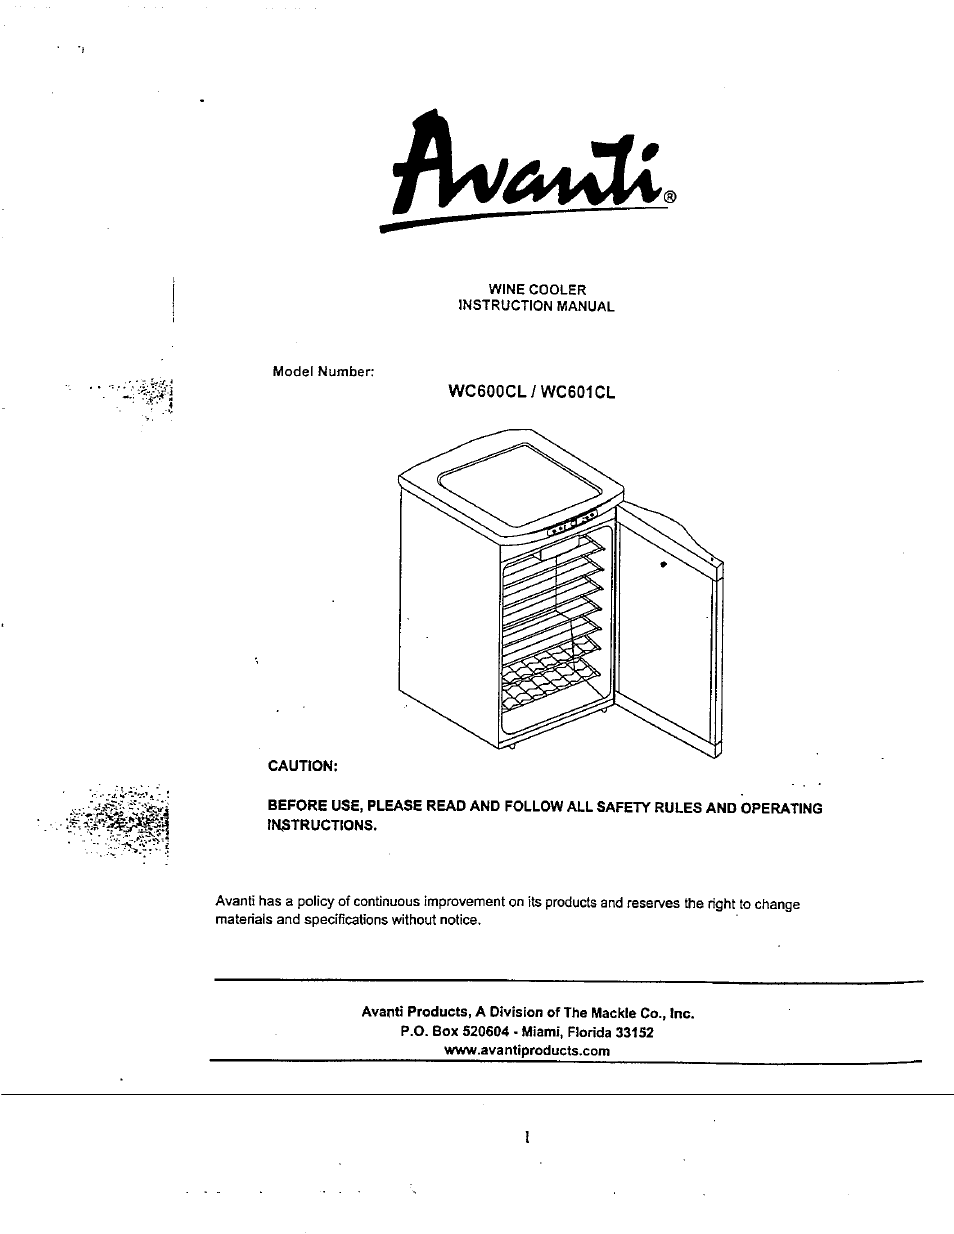 Avanti Wiring Diagram Library Car Diagrams Wc600cl User Manual 15 Pages Also For Wc601cl